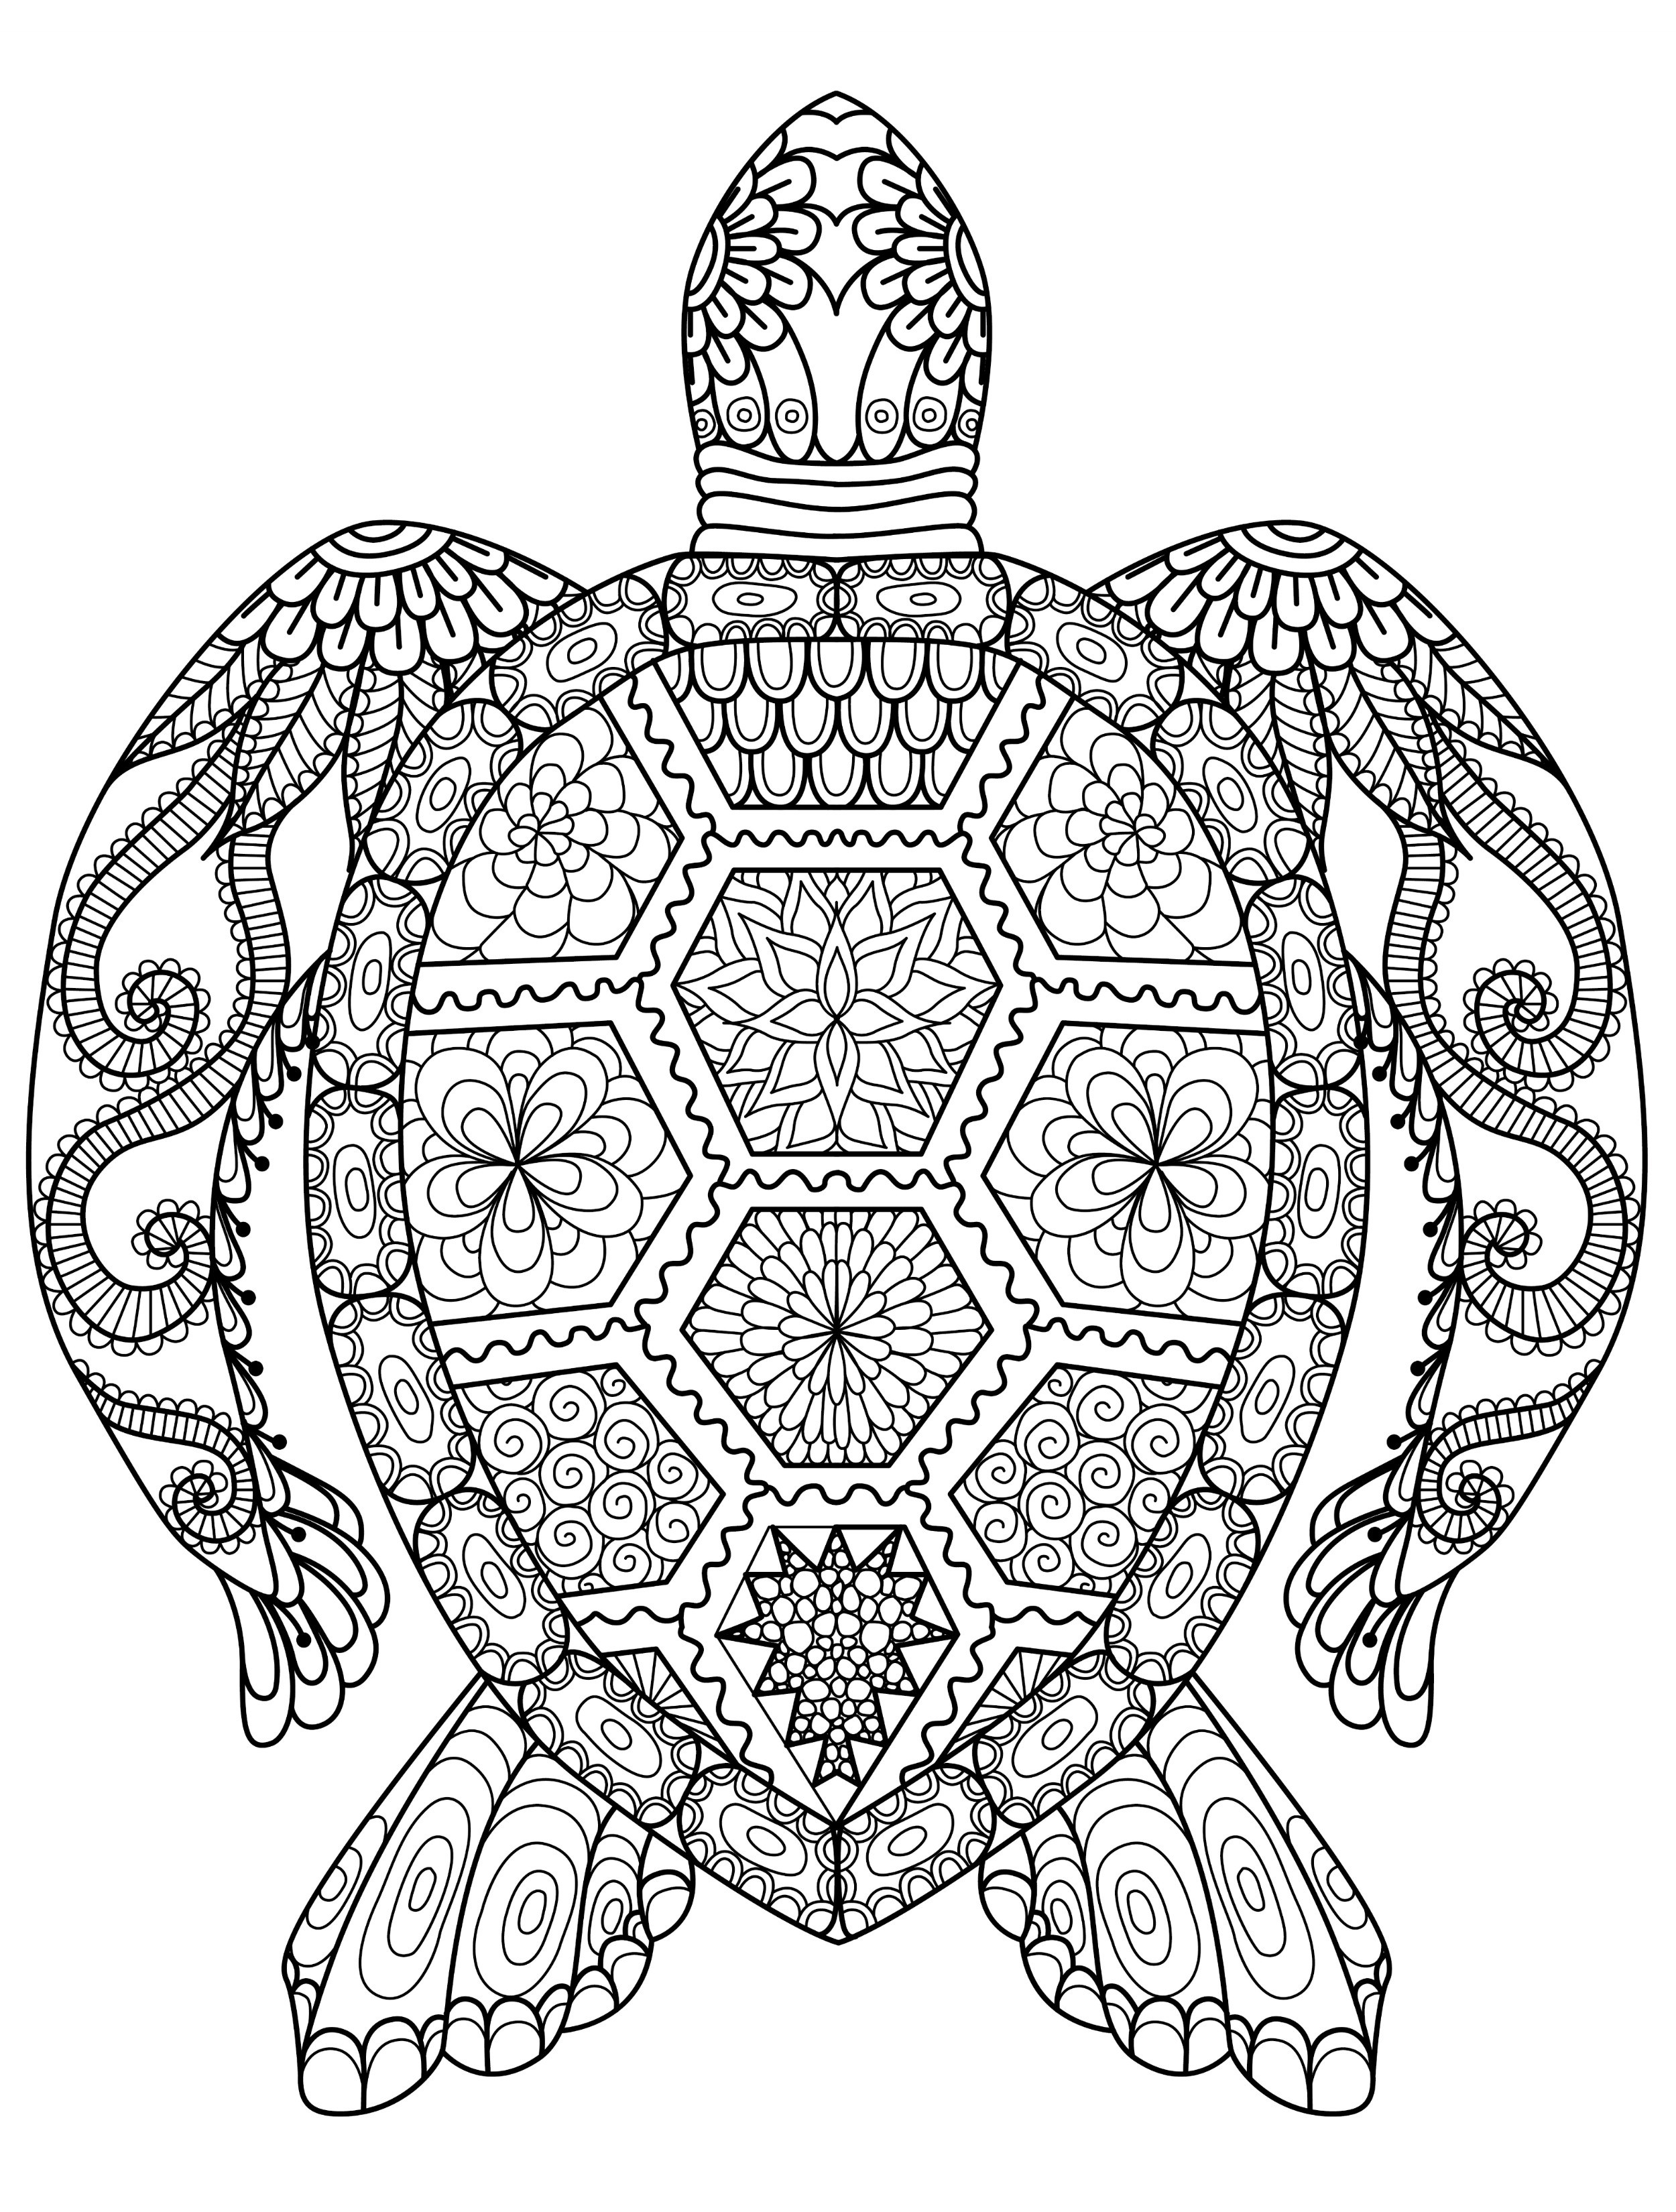 coloring pics coloring pages for girls best coloring pages for kids pics coloring